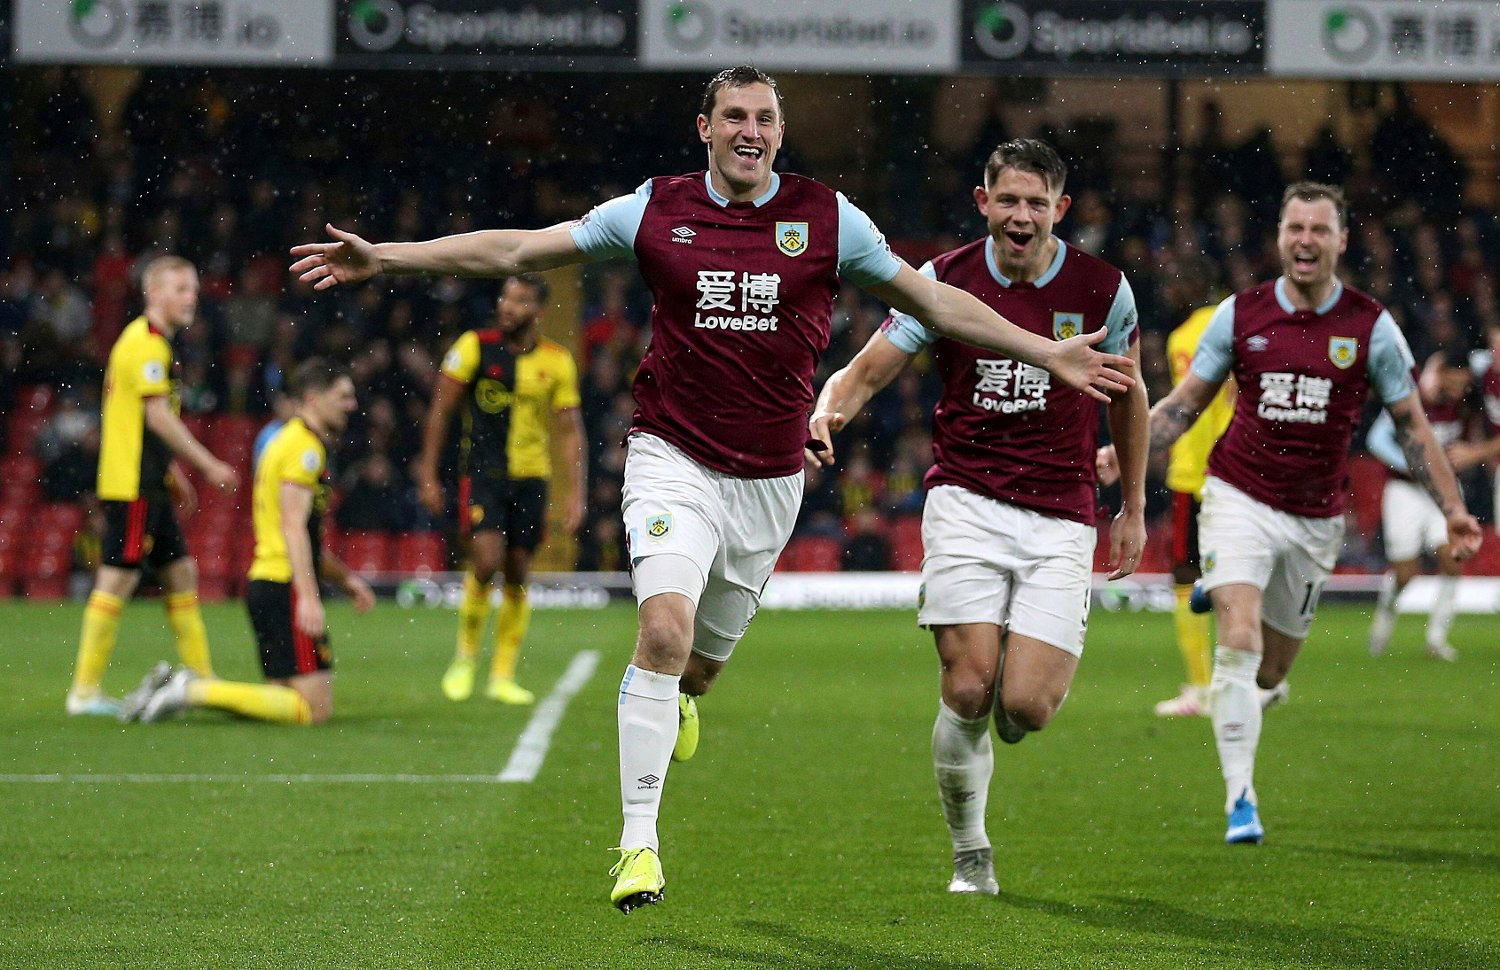 Burnley's Chris Wood celebrates scoring his side's first goal during the English Premier League soccer match between Burnley and Watford, at Vicarage Road, Watford, England, Saturday, Nov. 23, 2019.